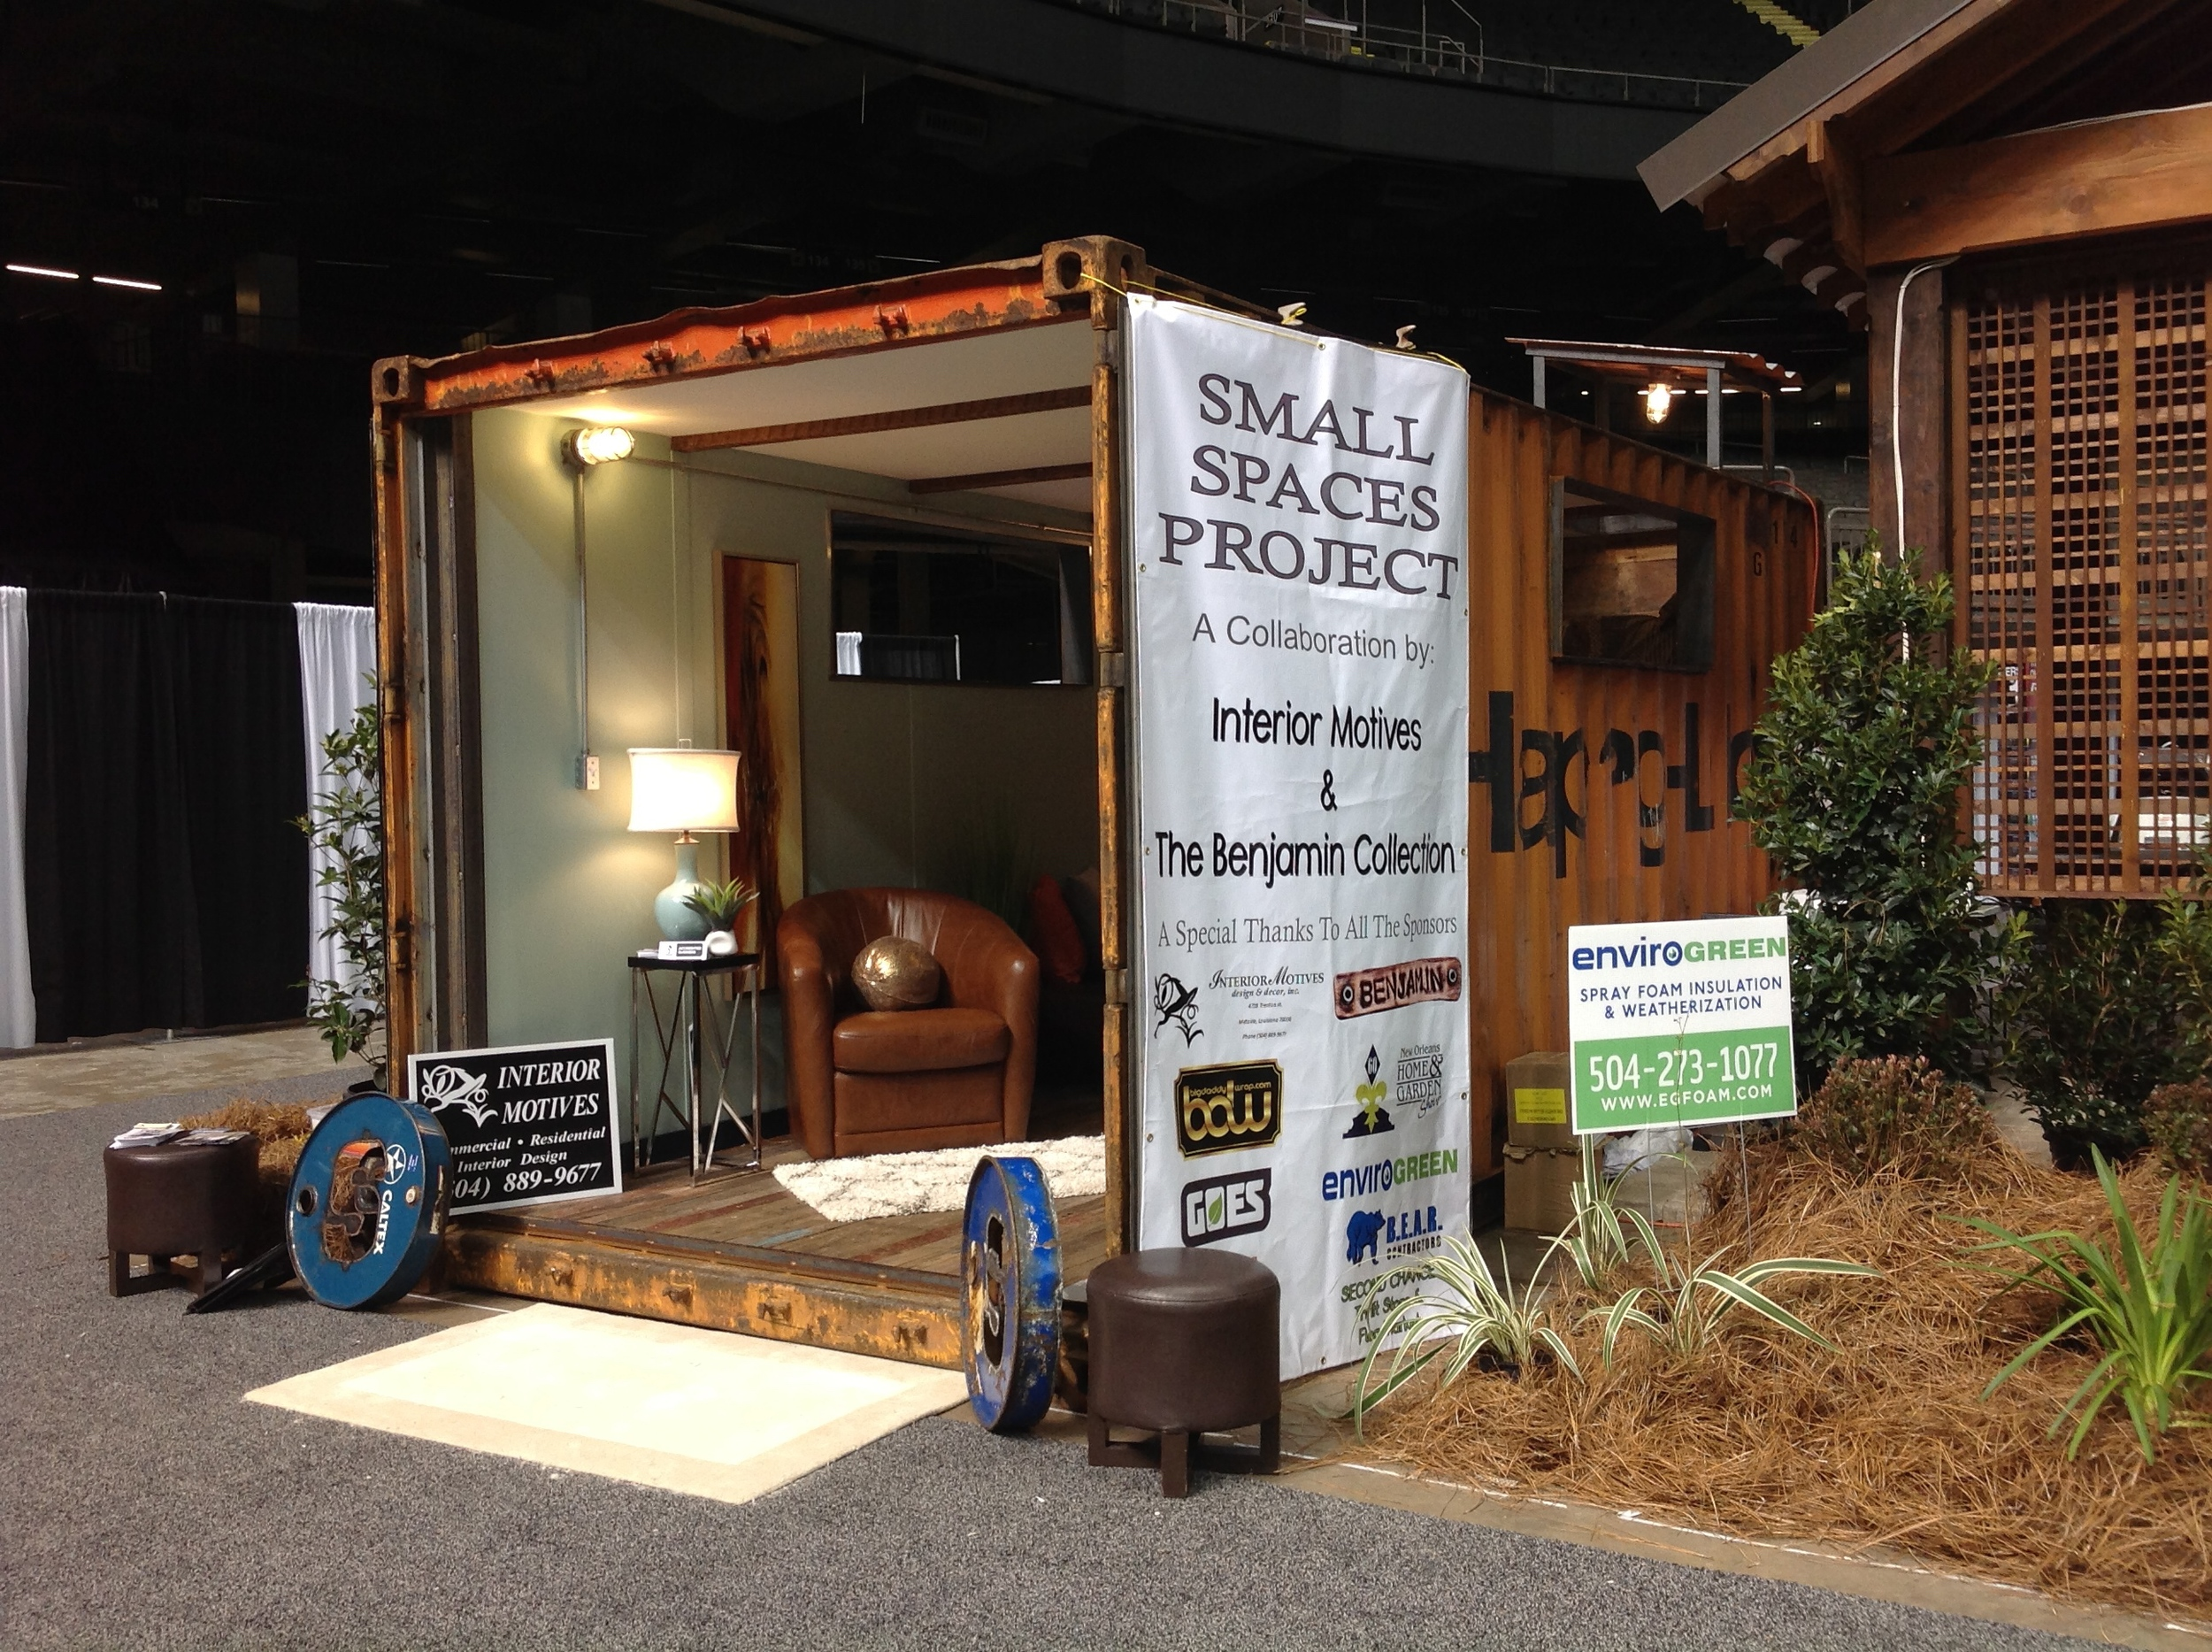 Come visit The Benjamin Collectables and myself from Interior Motivesat the Home & Garden show this weekend! Friday 3/13/15 12:00-8:00, Saturday 3/14/15 10:00-8:00, and Sunday 3/15/15 10:00-6:00.